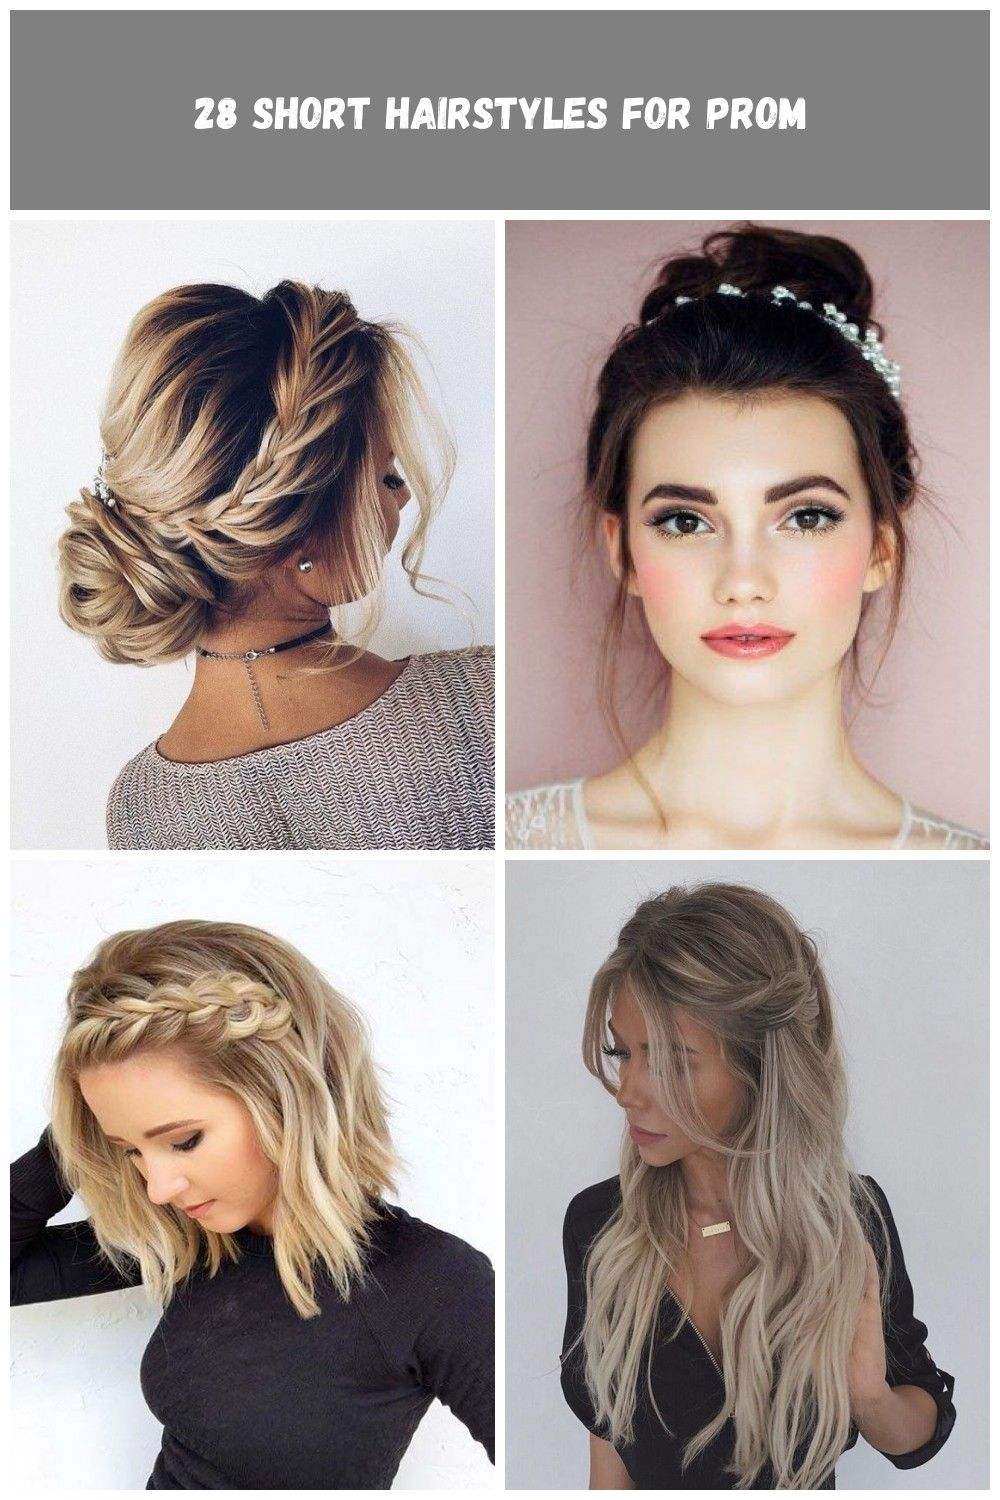 #Updo #WeddingUpdo #HalfUpdo #Hairstyles easy pretty updos low updos for short hair cute easy formal hairstyles cute and easy updo hairstyles pin up updo hairstyles cool hair updos hair styles #easyformalhairstyles